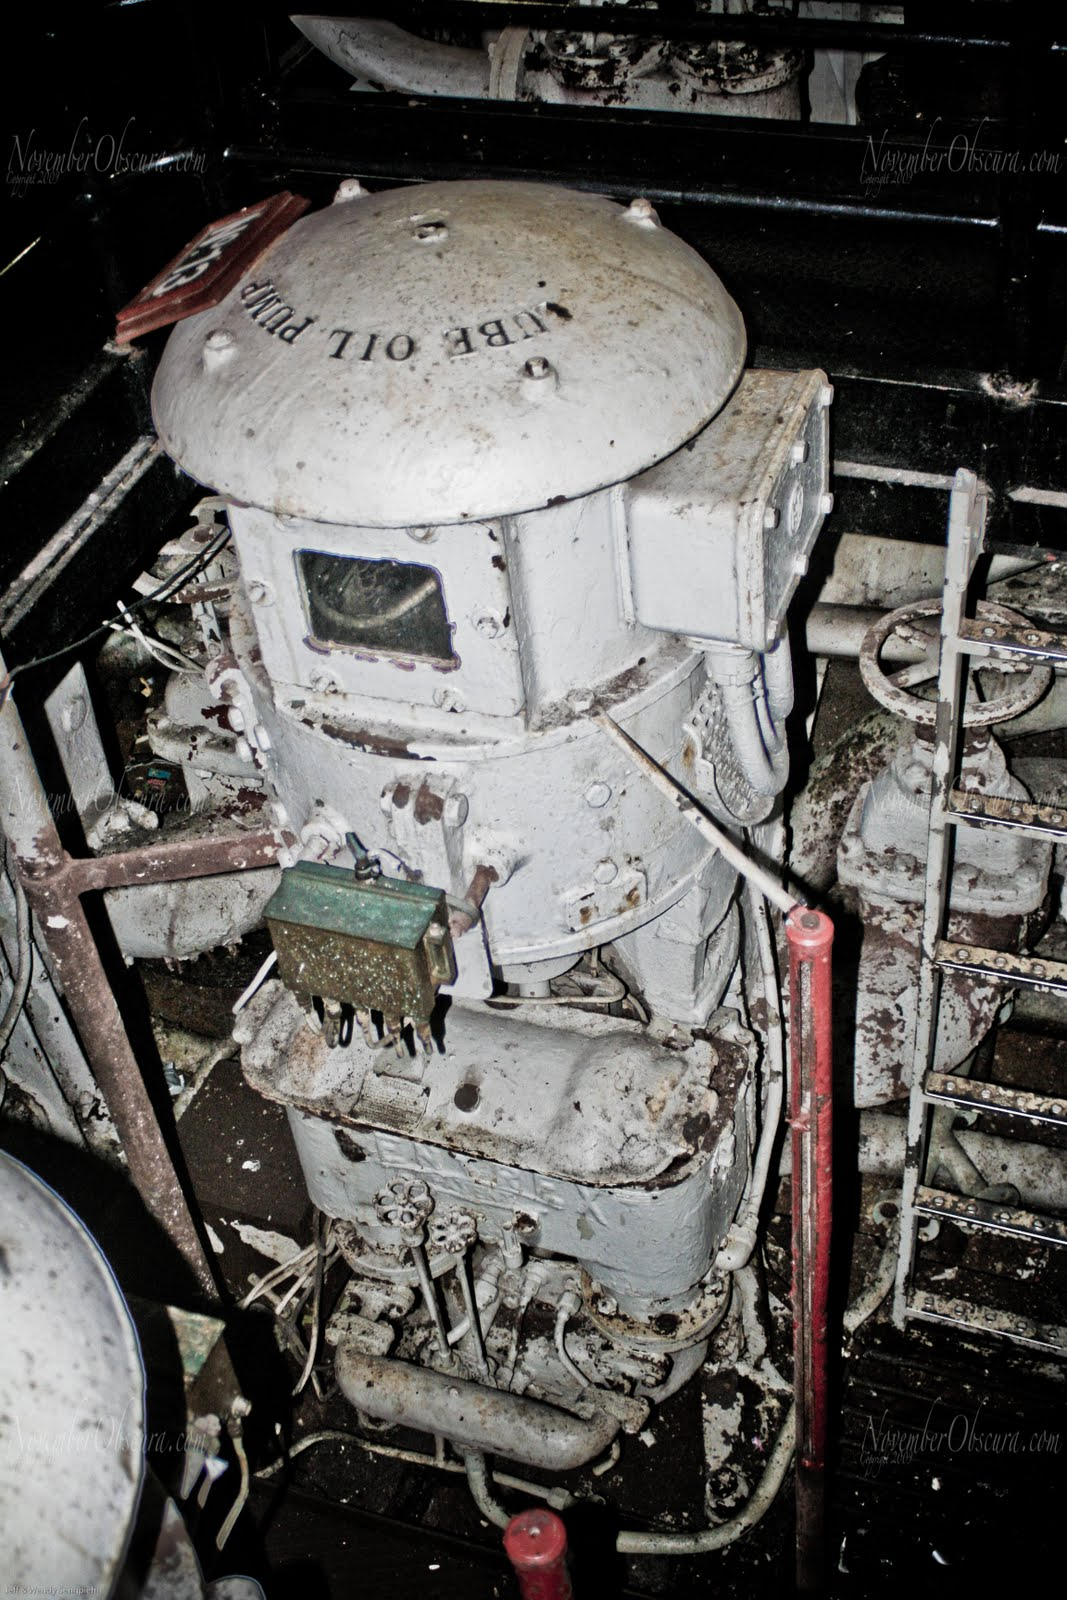 Queen Mary Engine Room: November Obscura: Queen Mary- Part 3 The Engine Room